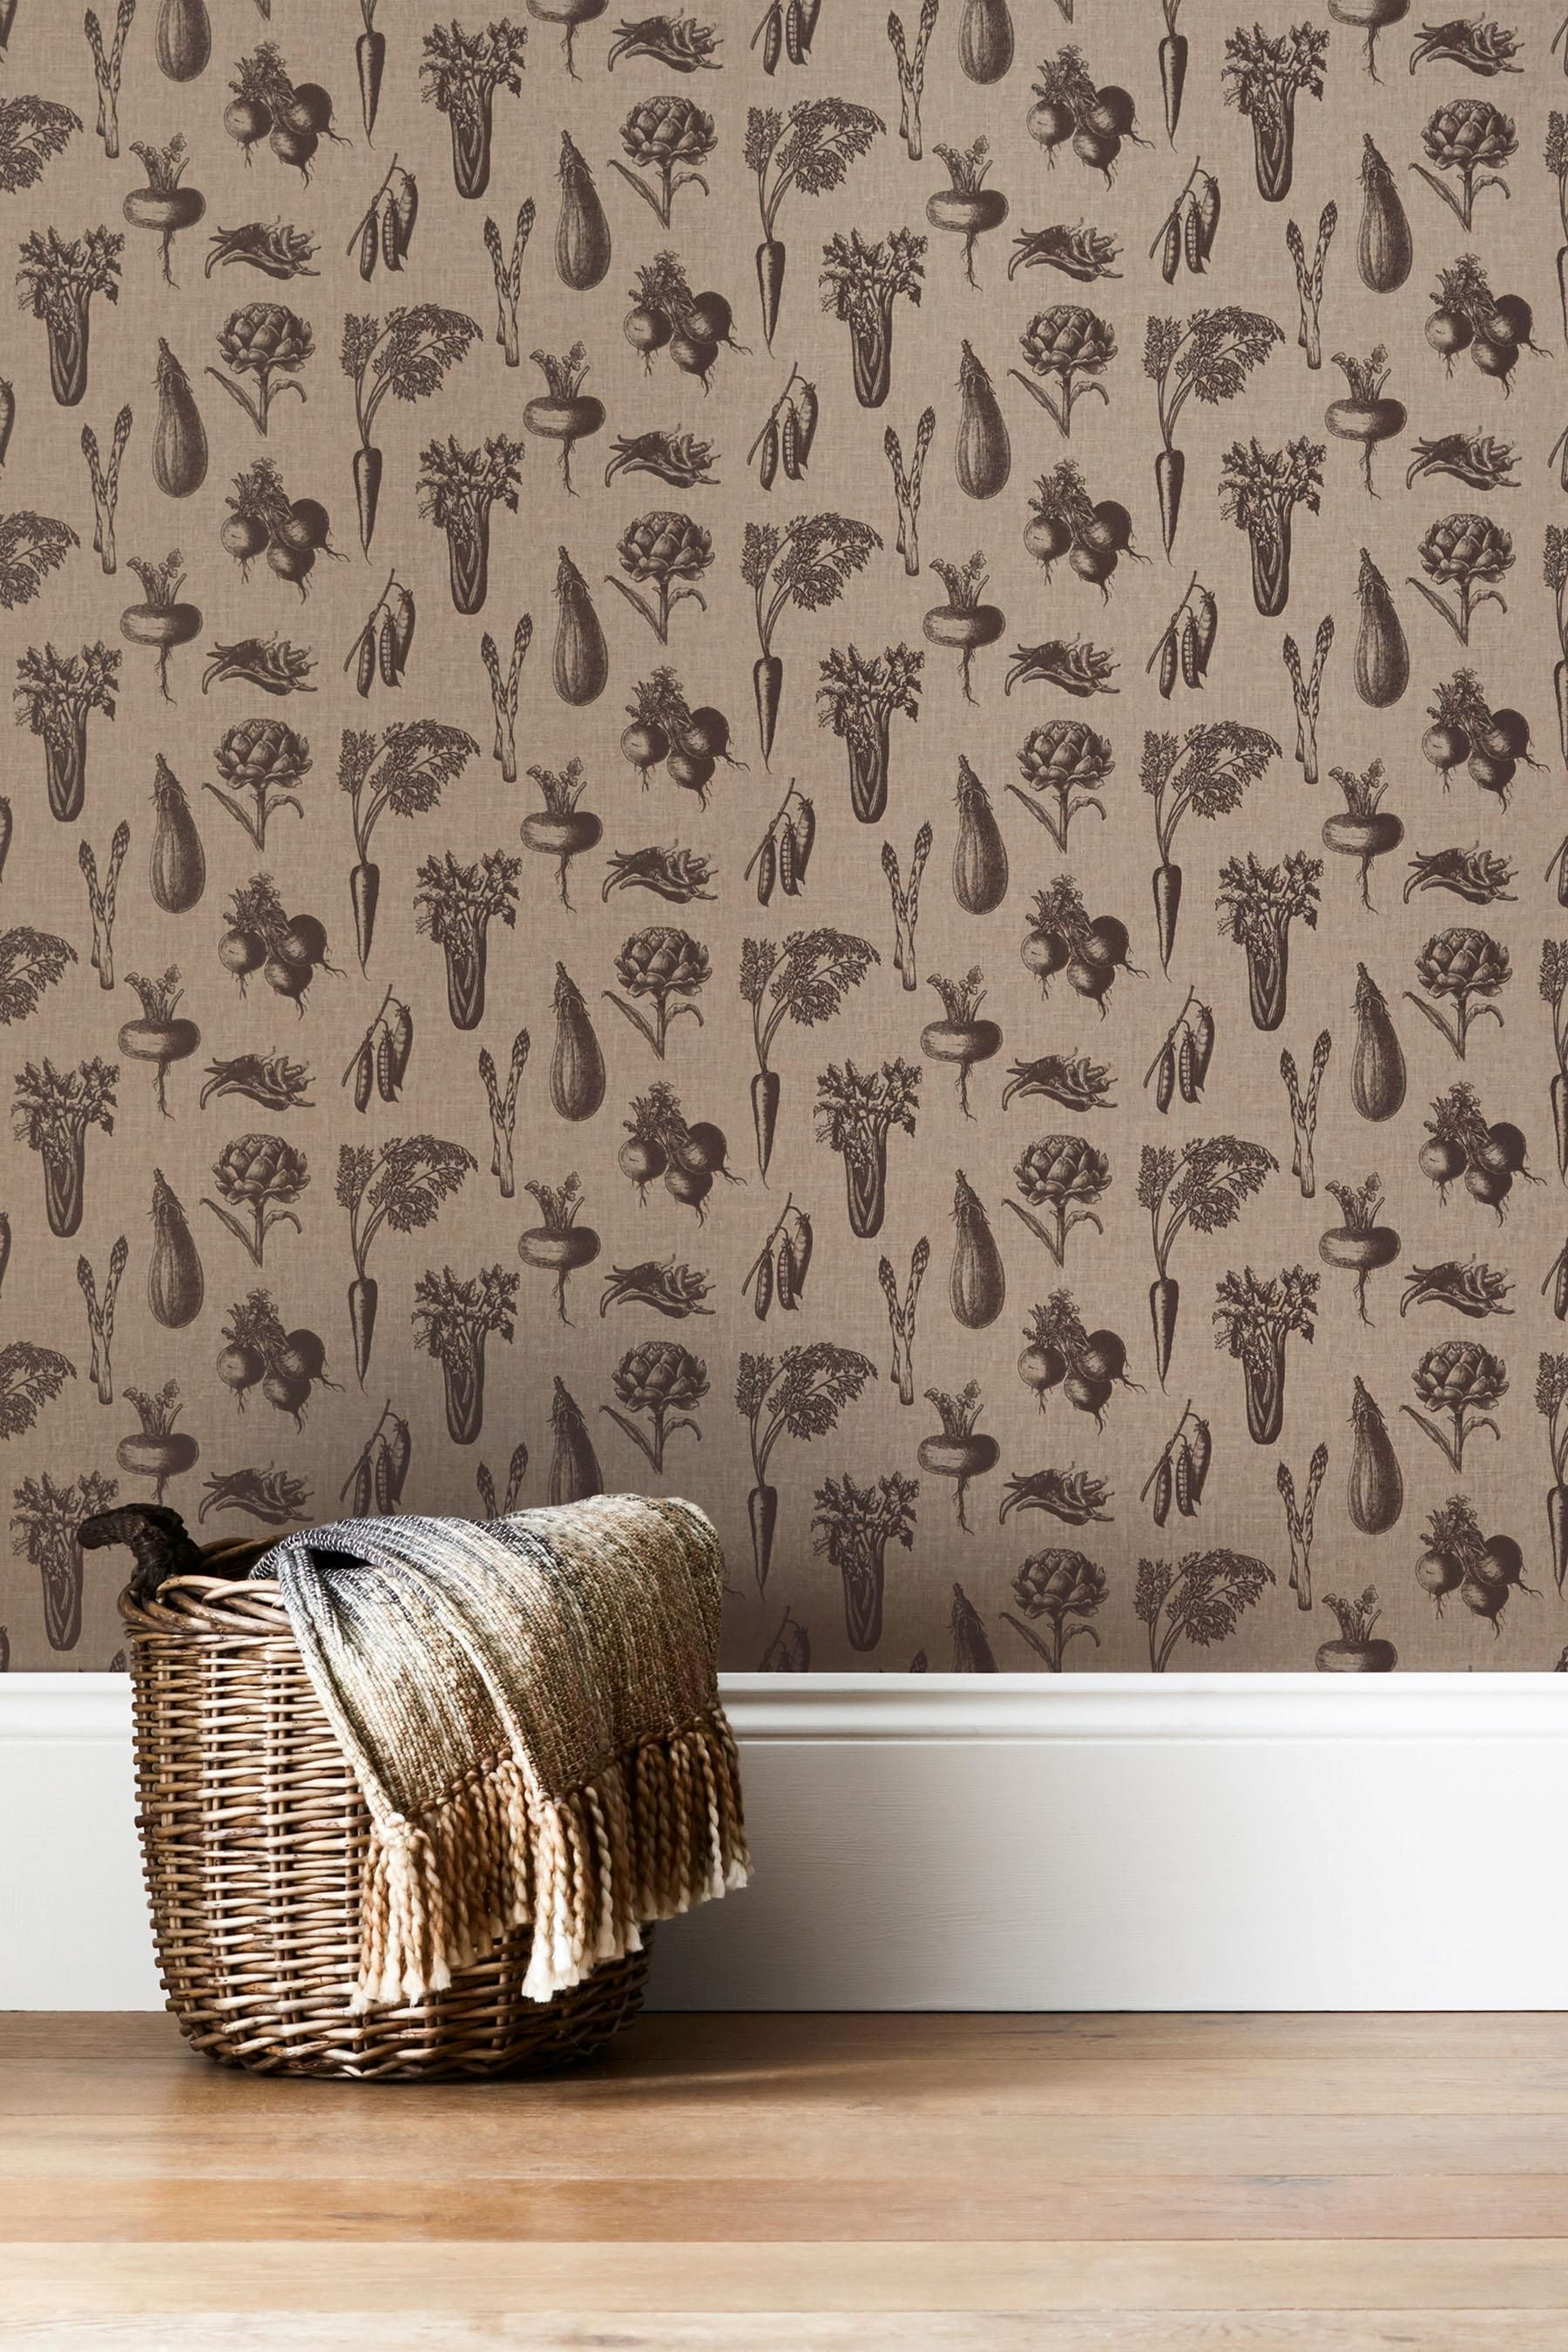 Buy Paste The Wall Vegetable Print Wallpaper From The Next